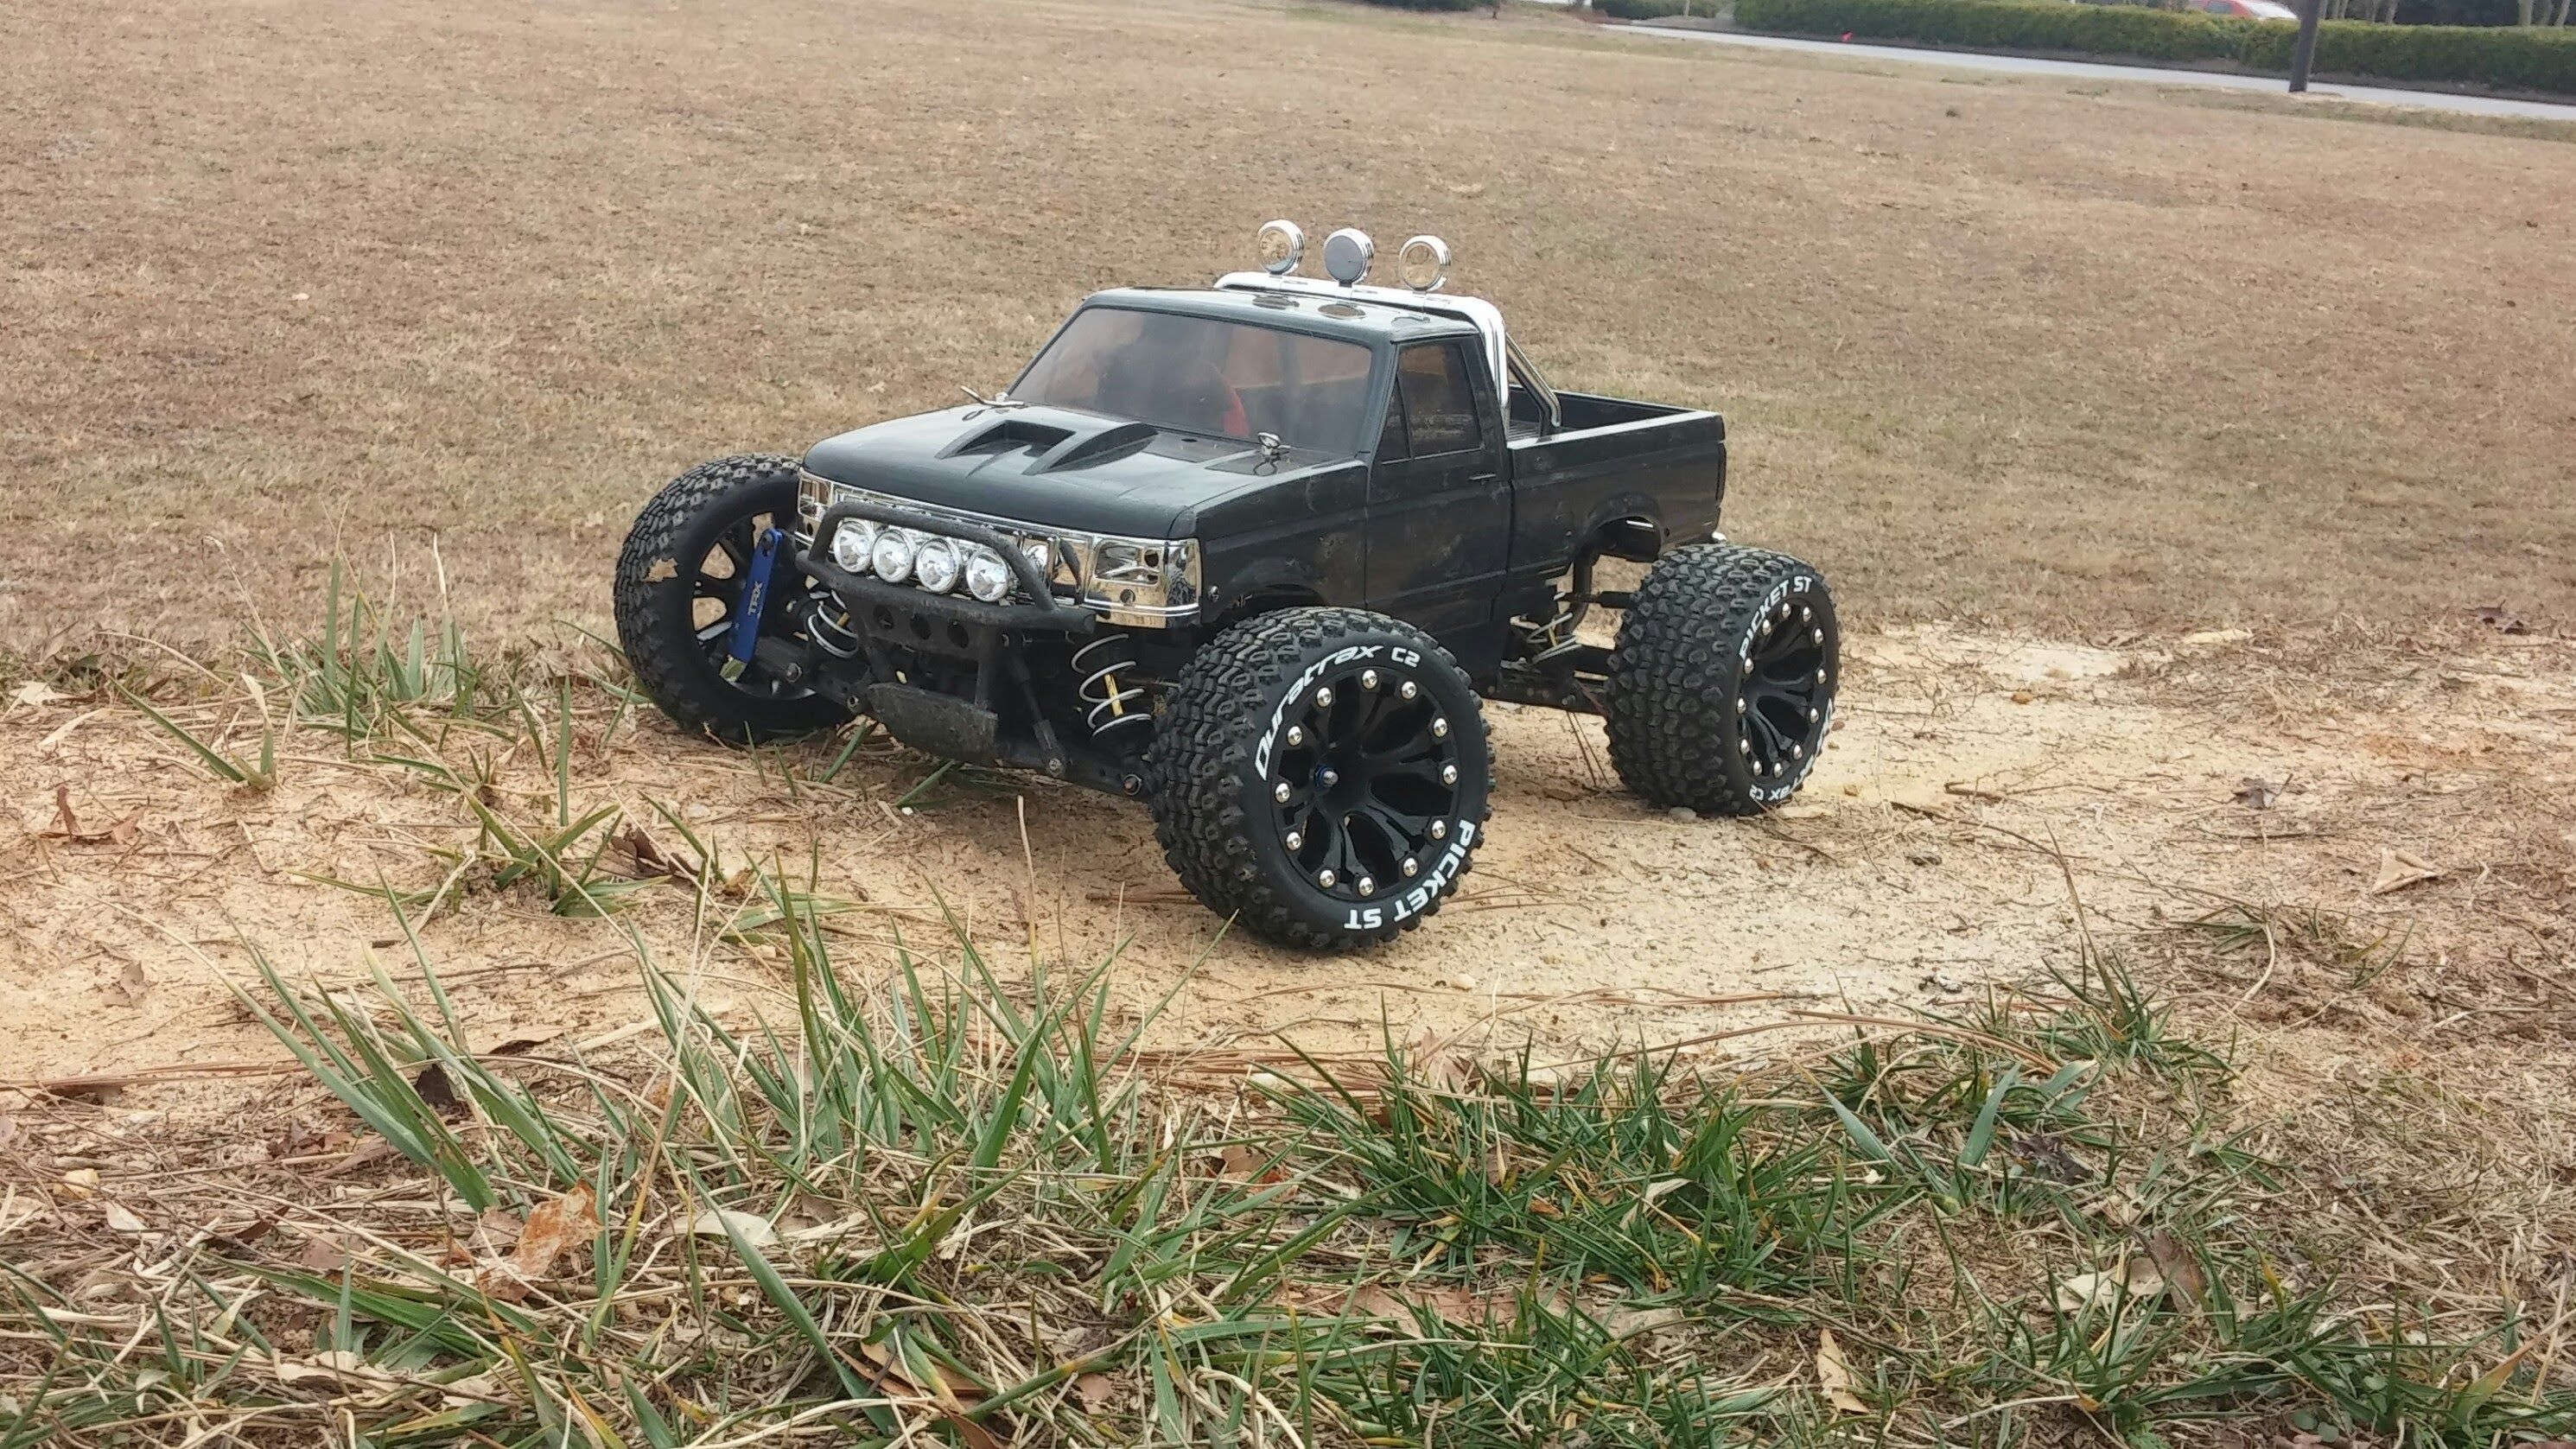 Traxxas stampede vxl run with Blackfoot Xtreme Body and Duratrax Tires & Wheels